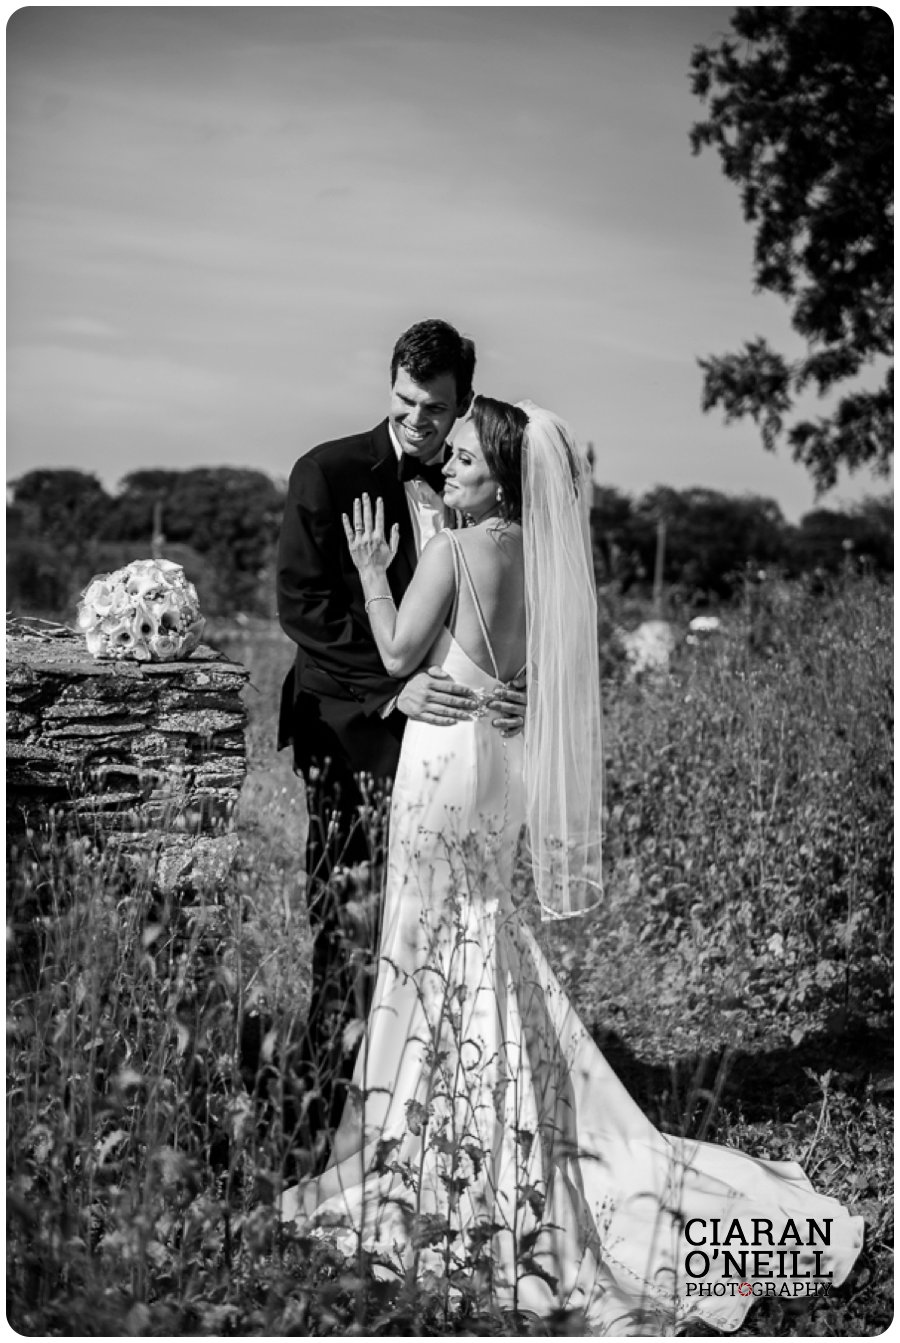 Jacqueline & Keith's wedding at Darver Castle by Ciaran O'Neill Photography 22